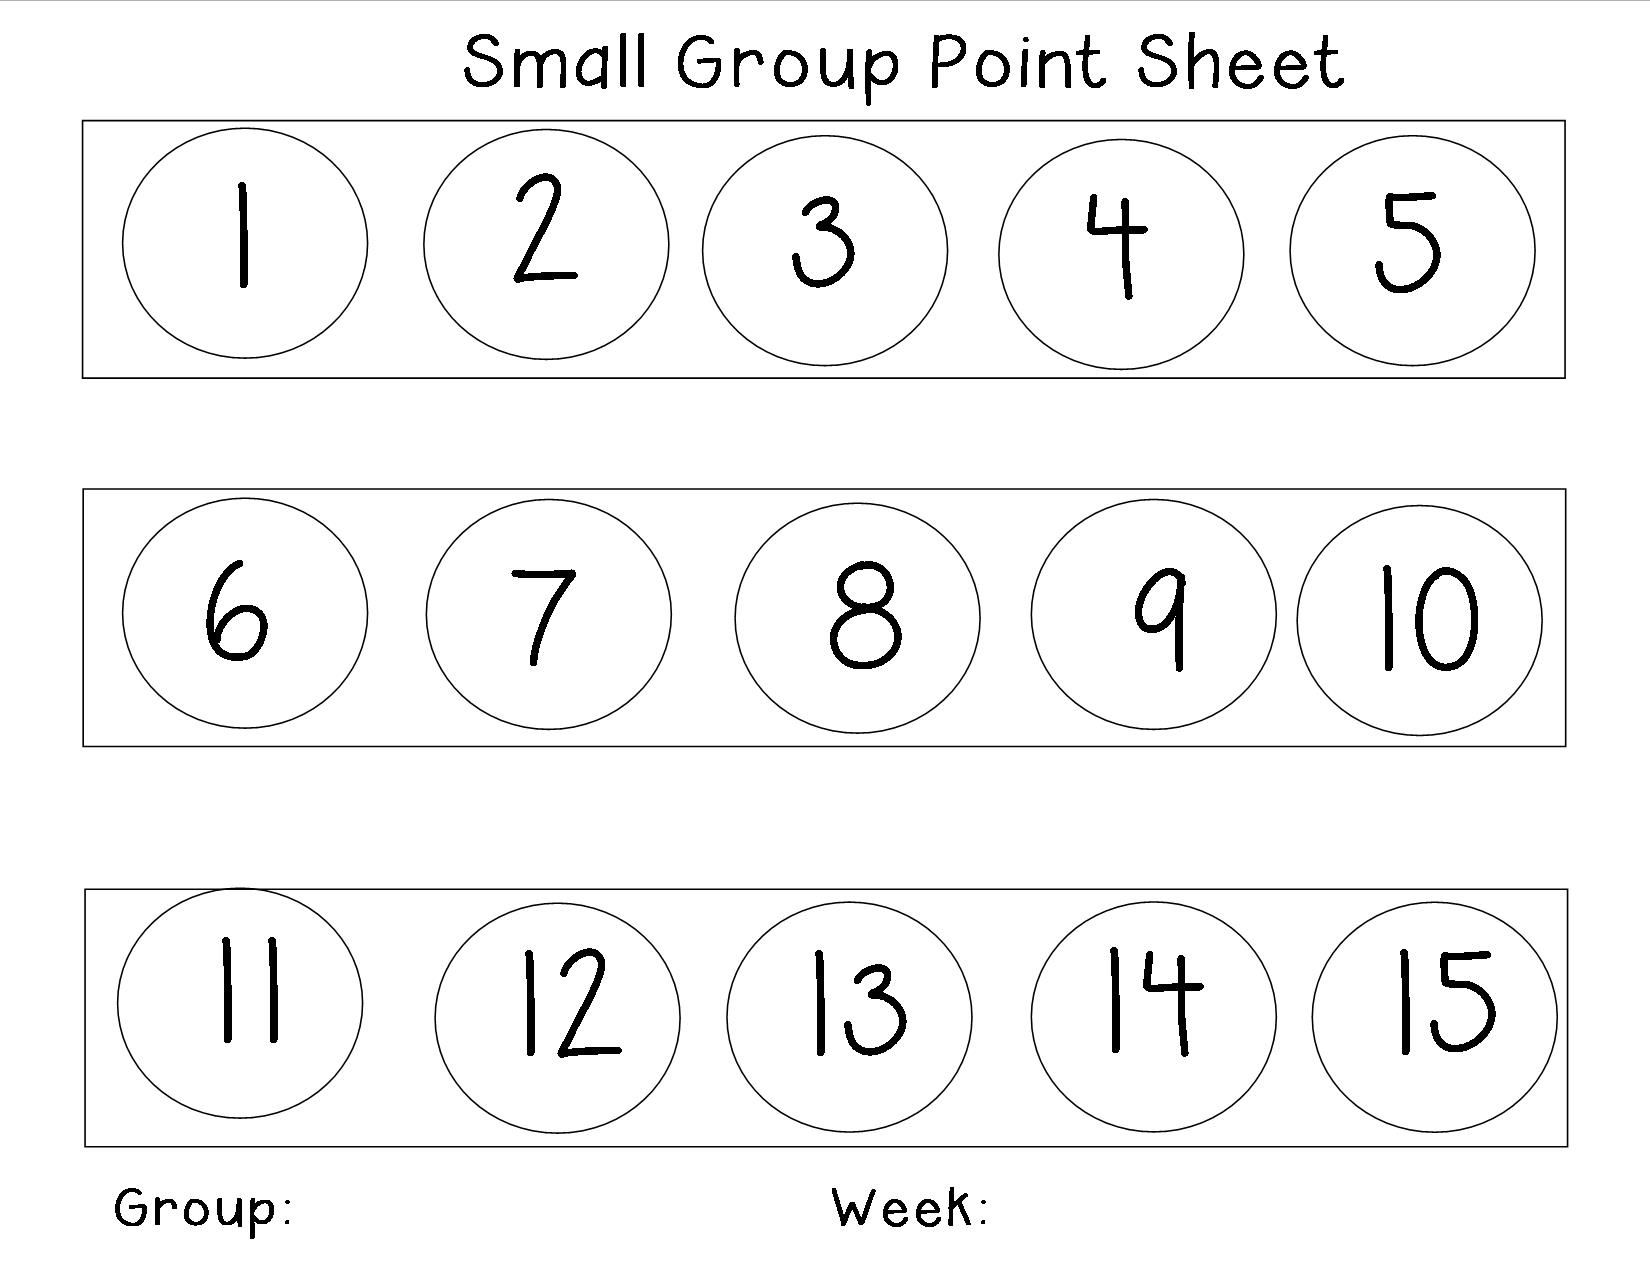 Behavior Management Point Sheet For Small Groups It Can